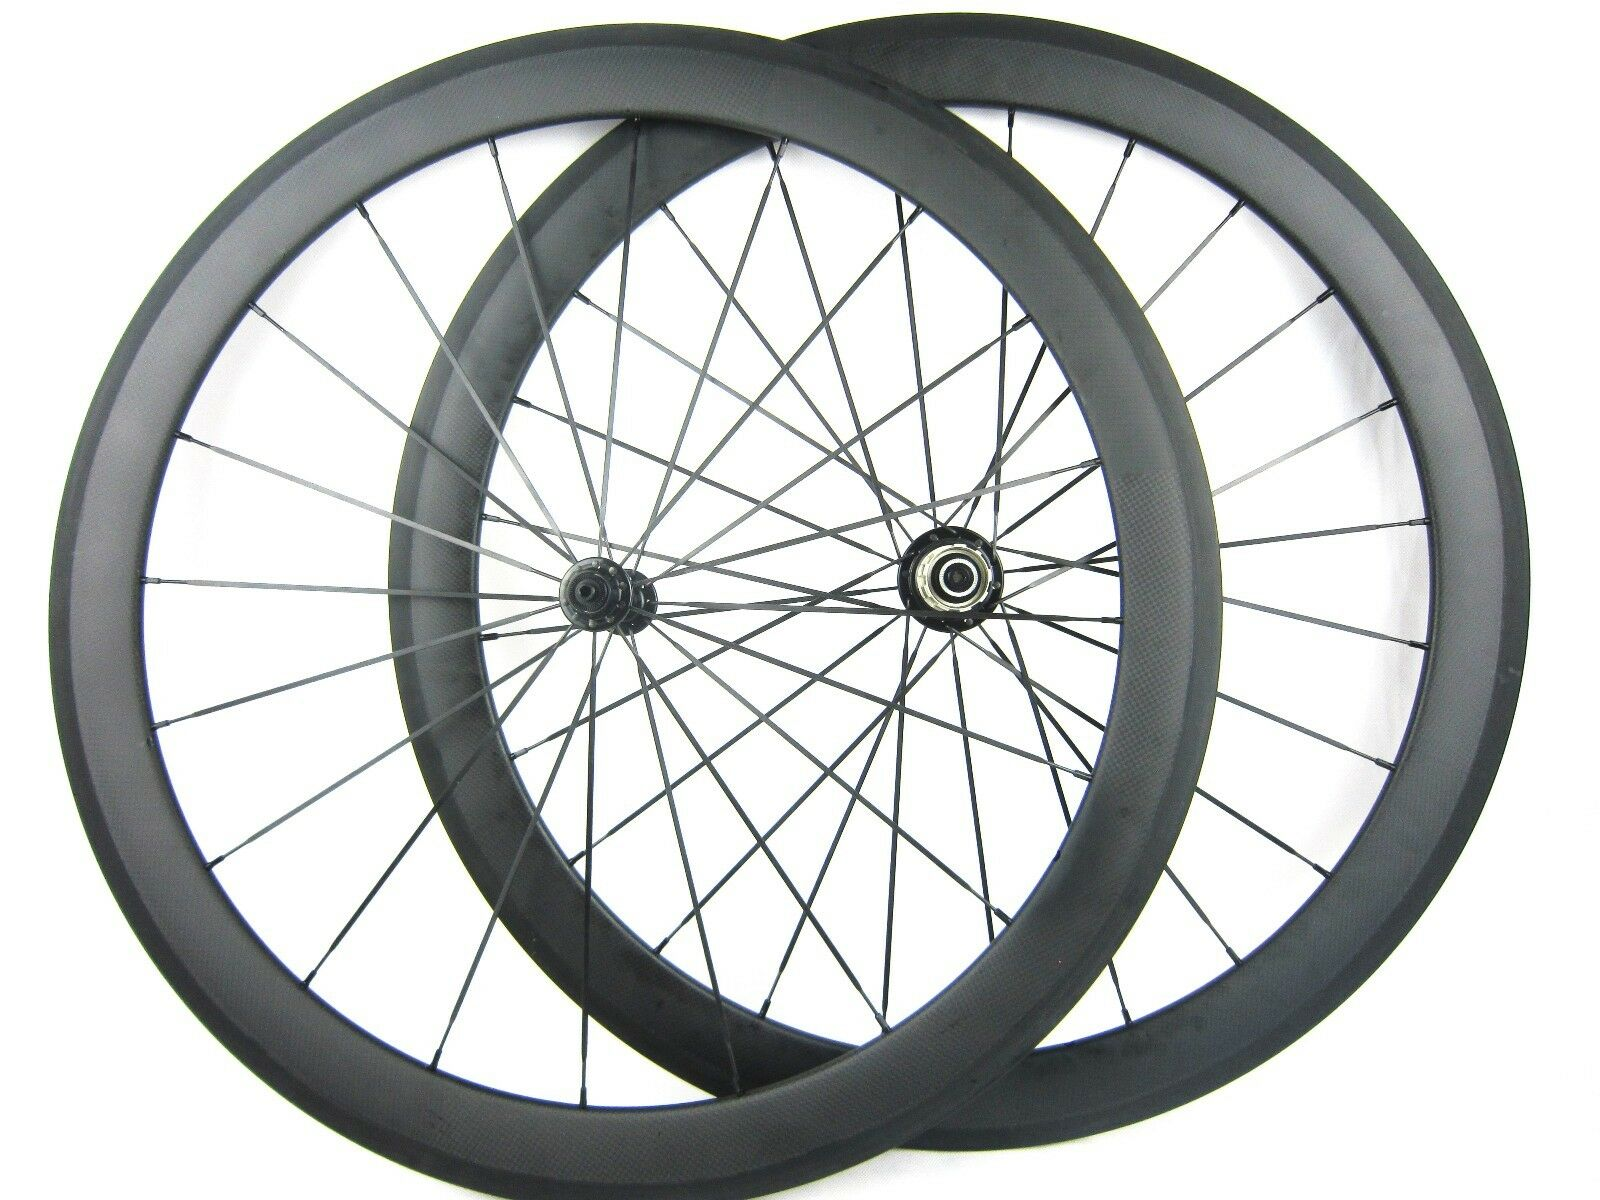 23mm width 50mm clincher 700c full carbon fiber road bicycle wheels